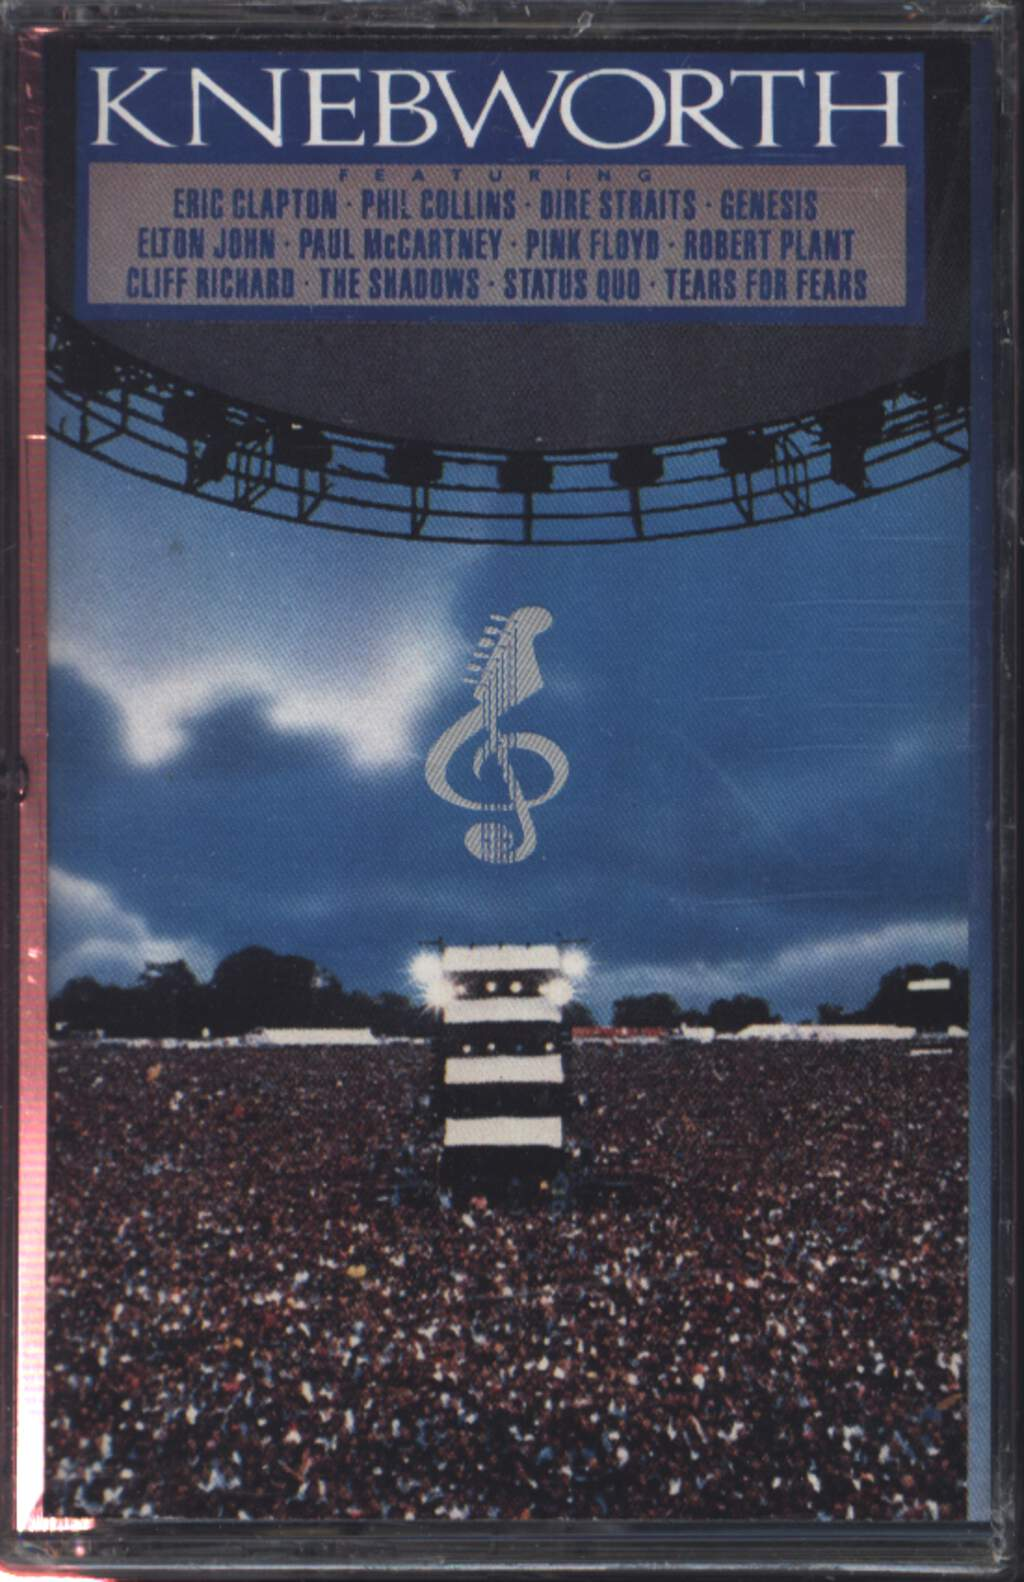 Various: Knebworth The Album, Compact Cassette